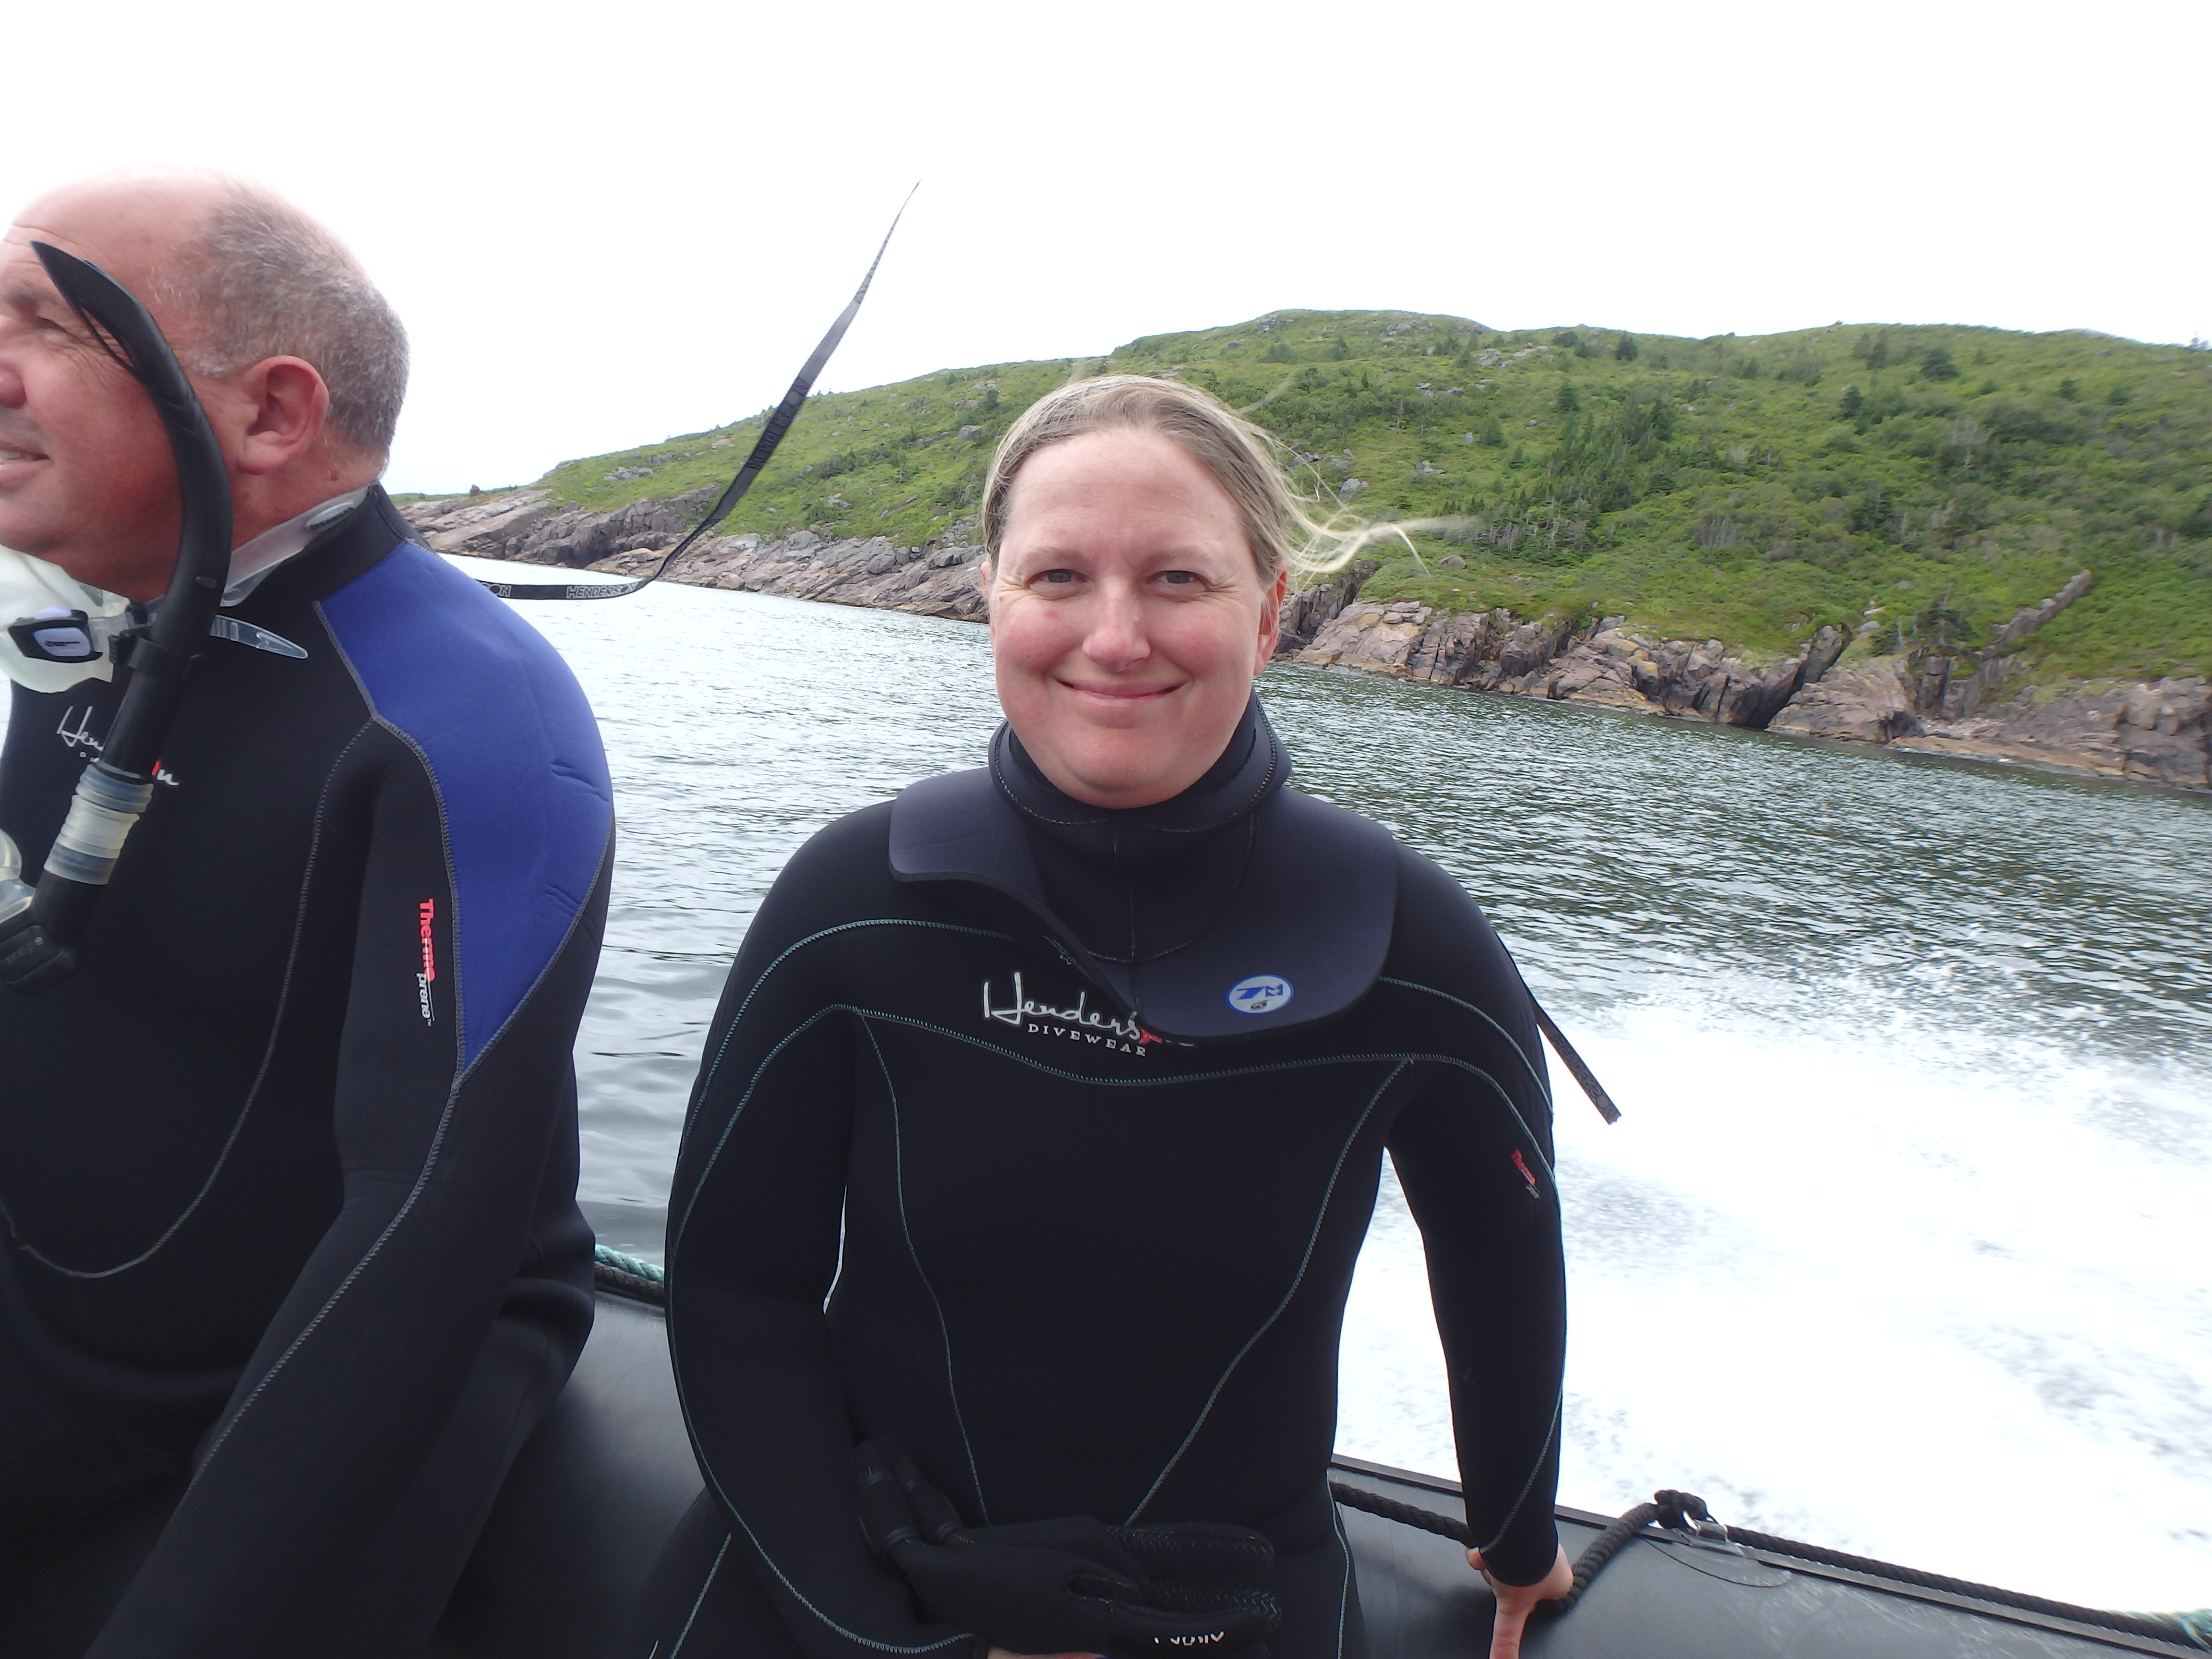 All smiles after Humpback whale encounter; Petty Harbour, Newfoundland; 2015